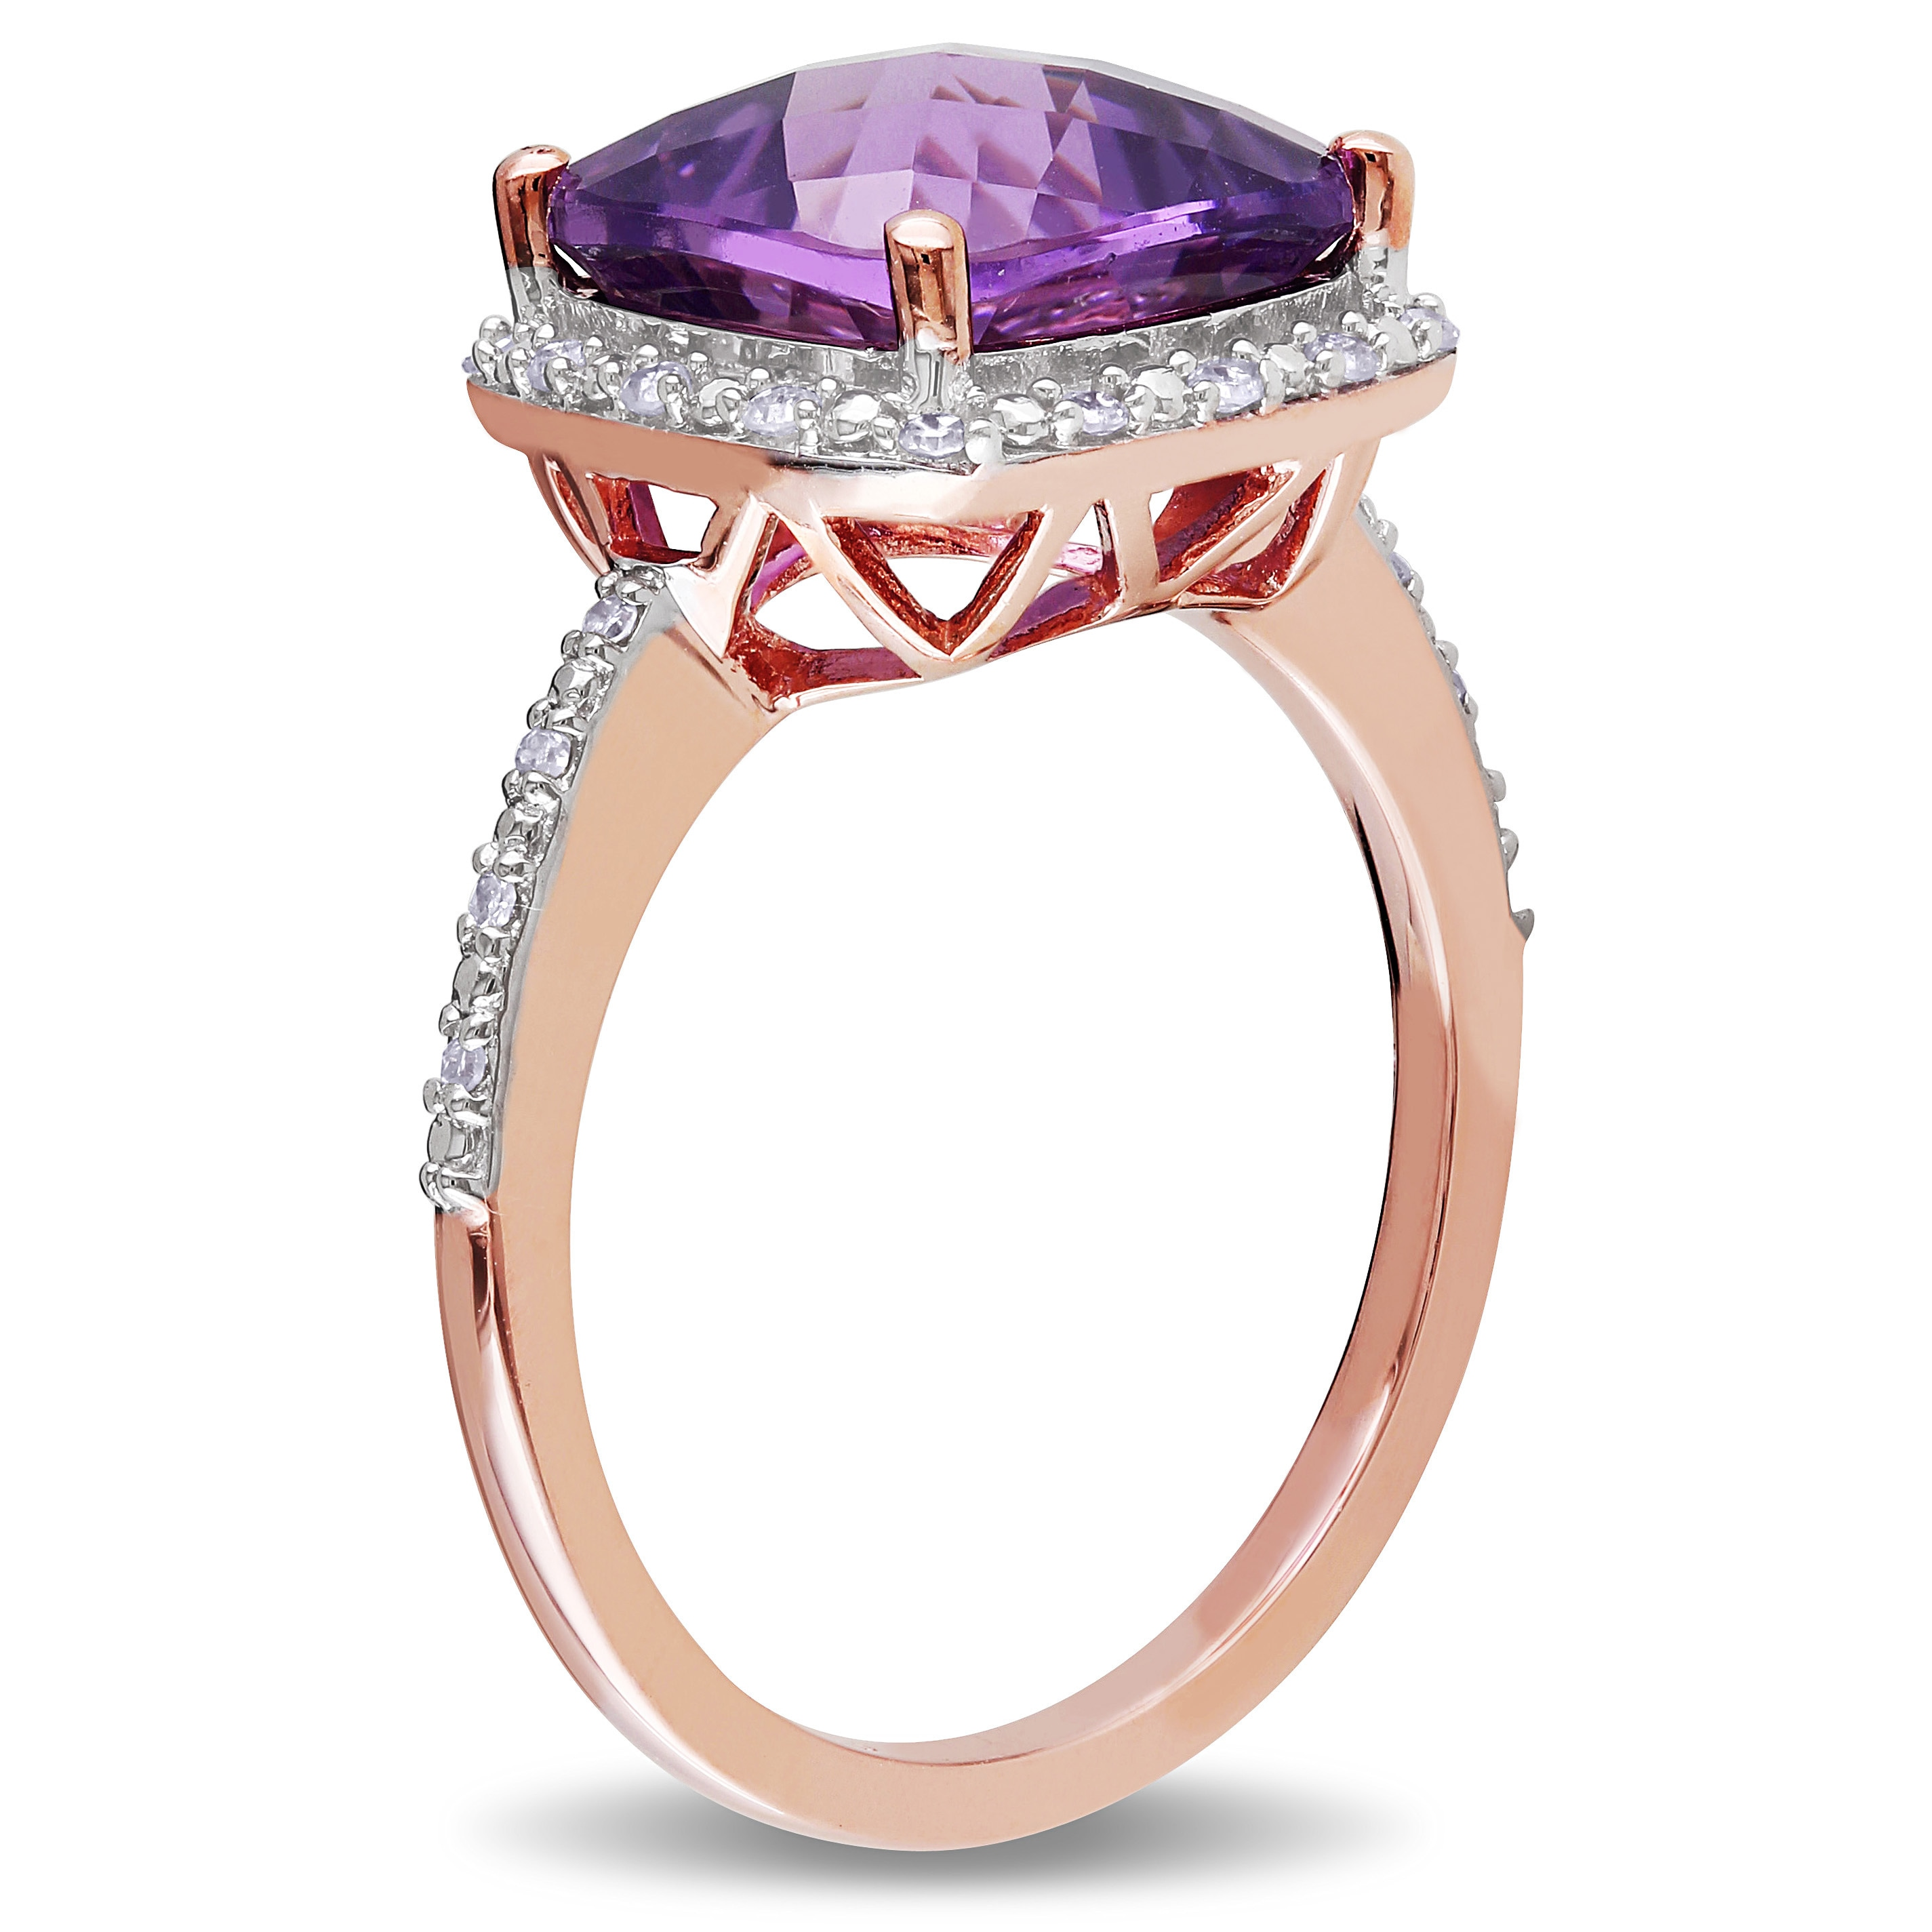 categories amethyst gemstone rings jupiter inc amethist product ring shing tf collections diamond gold jewelry tags on oval engagement white color sku